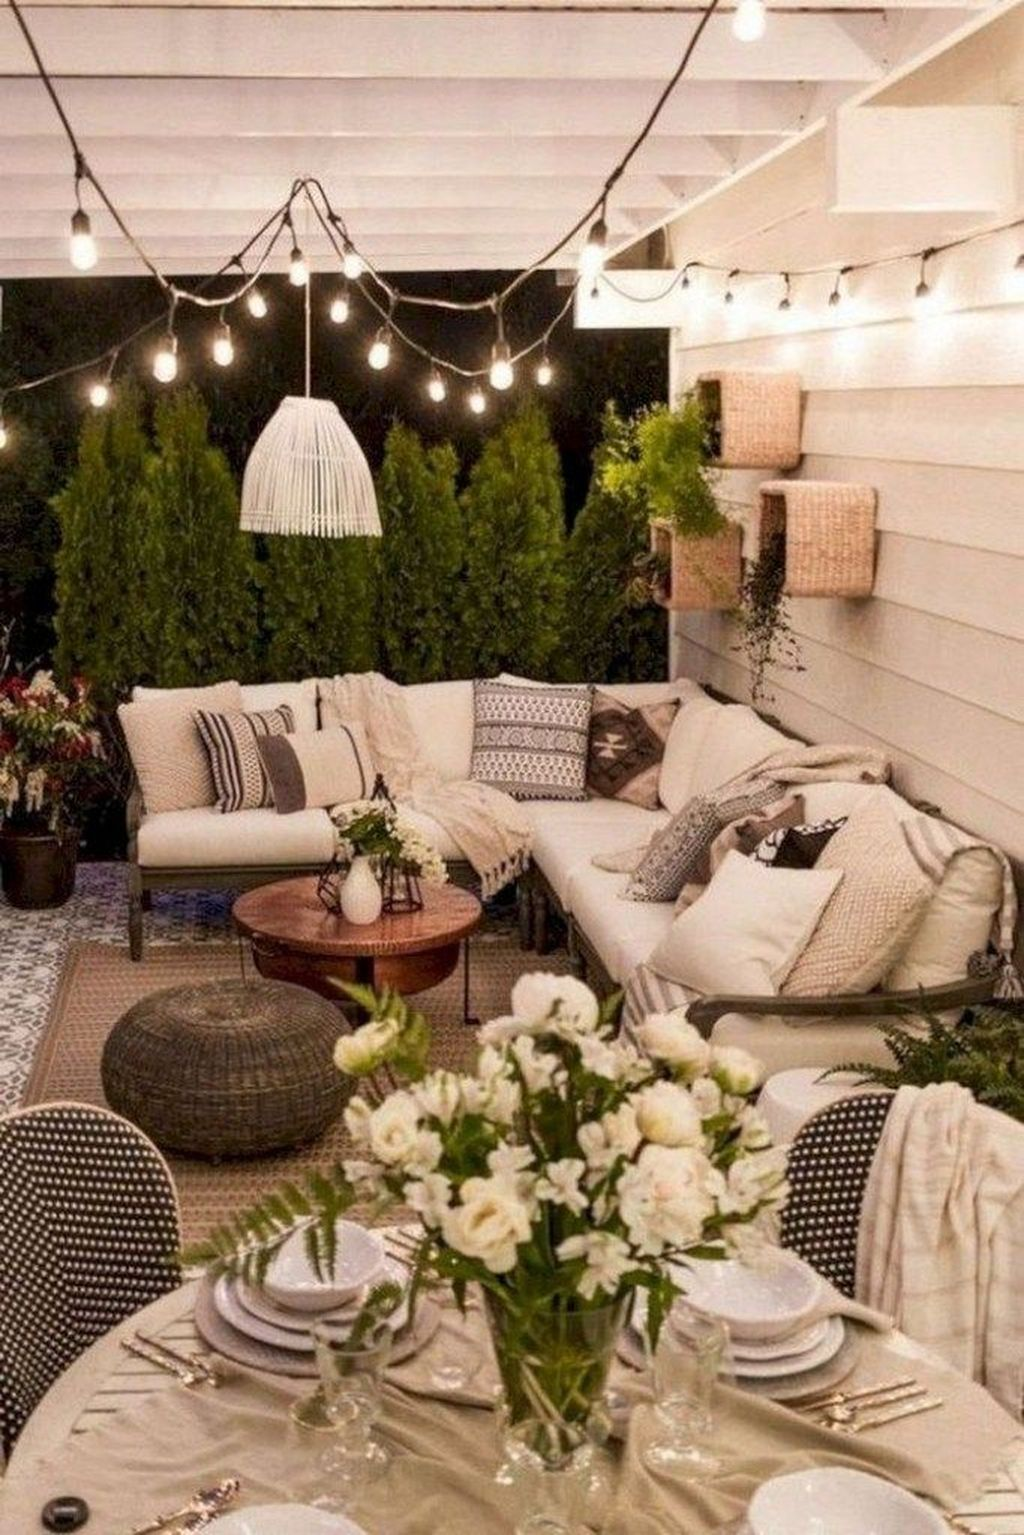 20+ Inspiring Backyard Patio Design Ideas With Beautiful Landscaping - LOVAHOMY